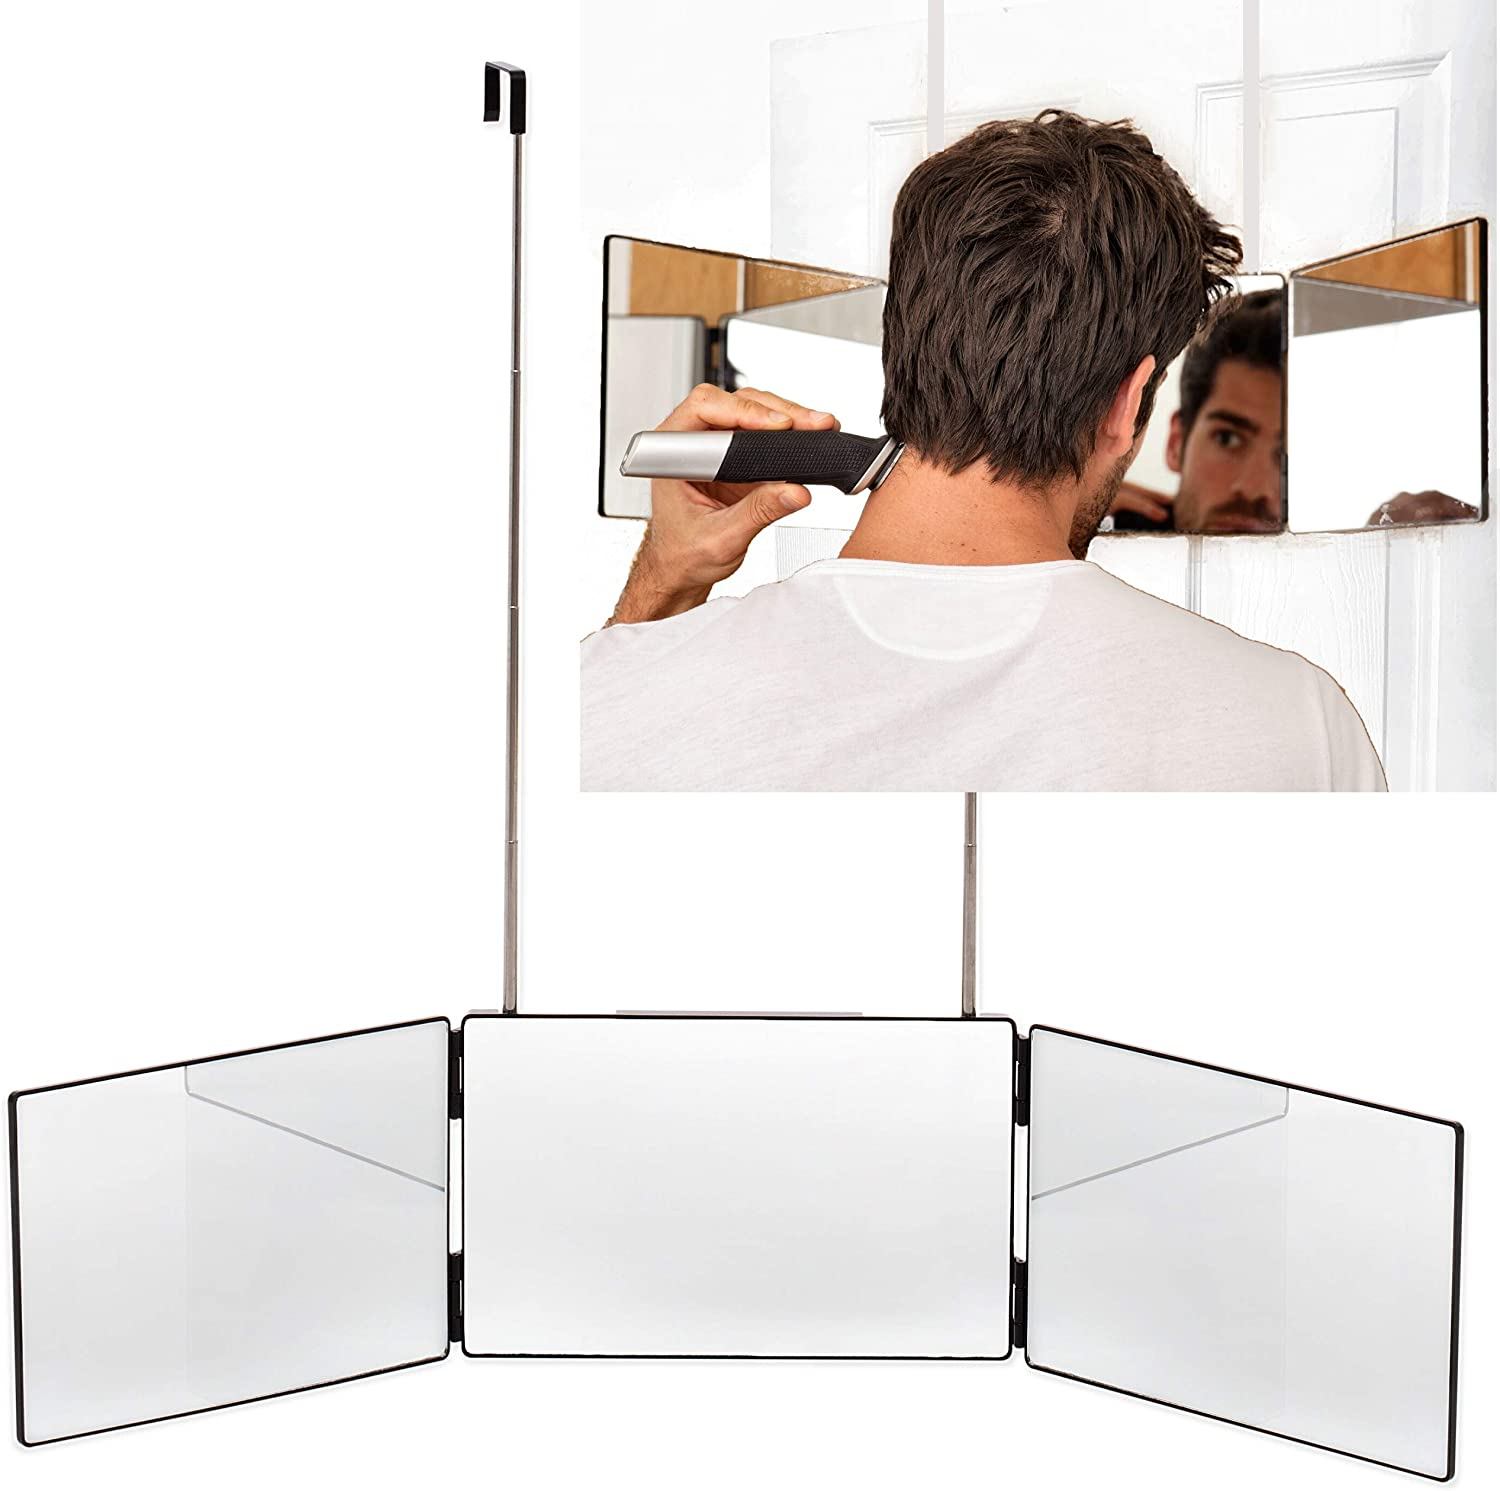 The Barbering Co. 3 Way Mirror | Trifold Mirror for Self Hair Cutting and Styling for Men | DIY Haircut Tool to Cut, Trim, or Shave your Head and Neckline at Home | Adjustable, Portable and Hands-Free